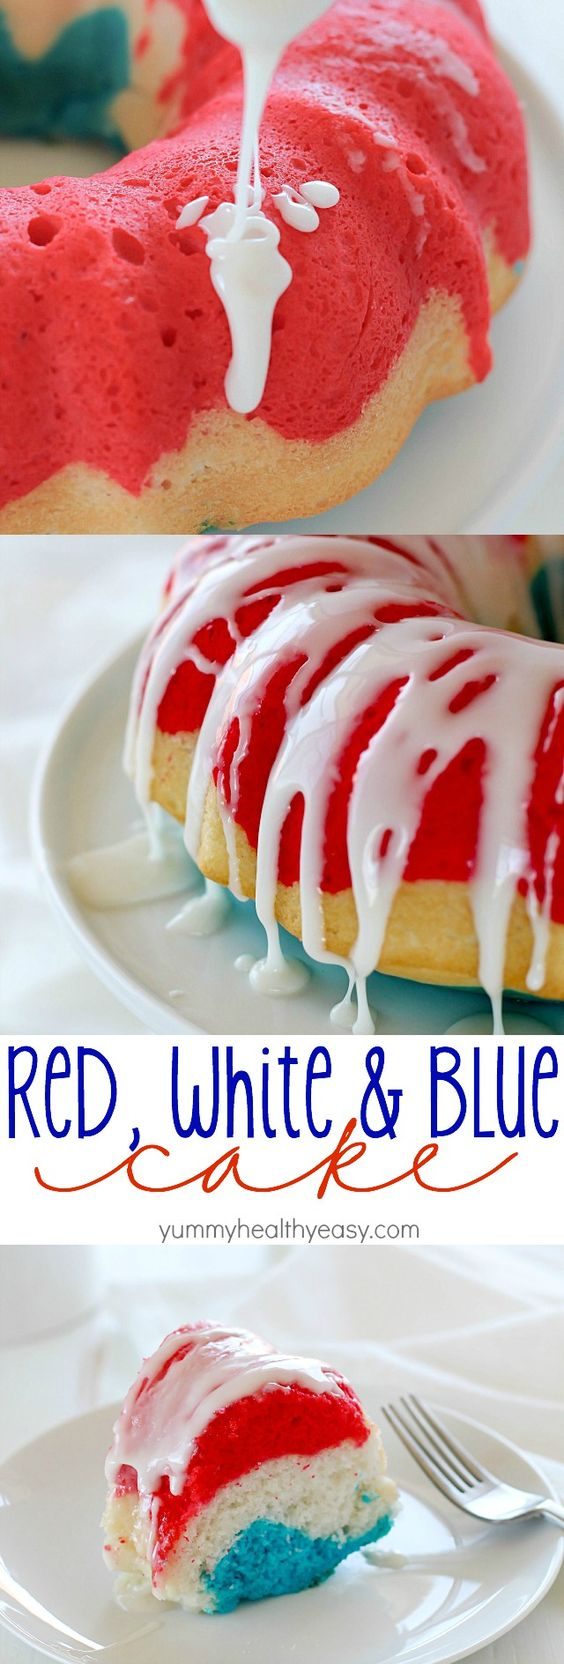 Easy Red White And Blue Cake Recipe Red White Blue